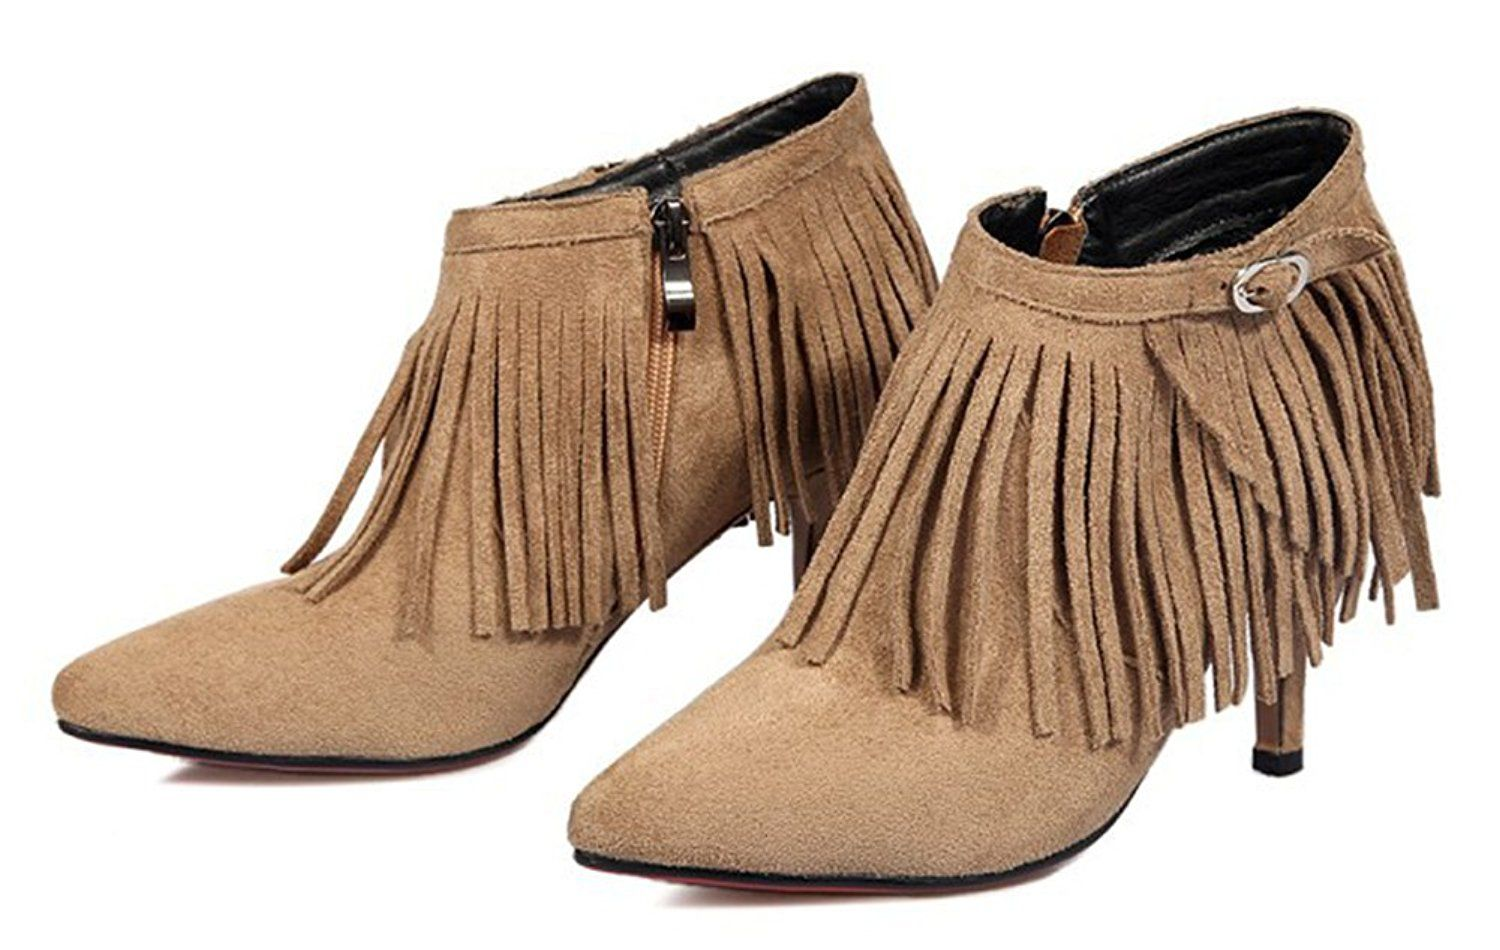 4f4a01da24 Aisun Women's Fashion Fringed Side Zipper Pointed Toe Dress Booties  Stiletto Kitten Heel Ankle Boots Shoes >>> Hurry! Check out this great  shoes : Work ...